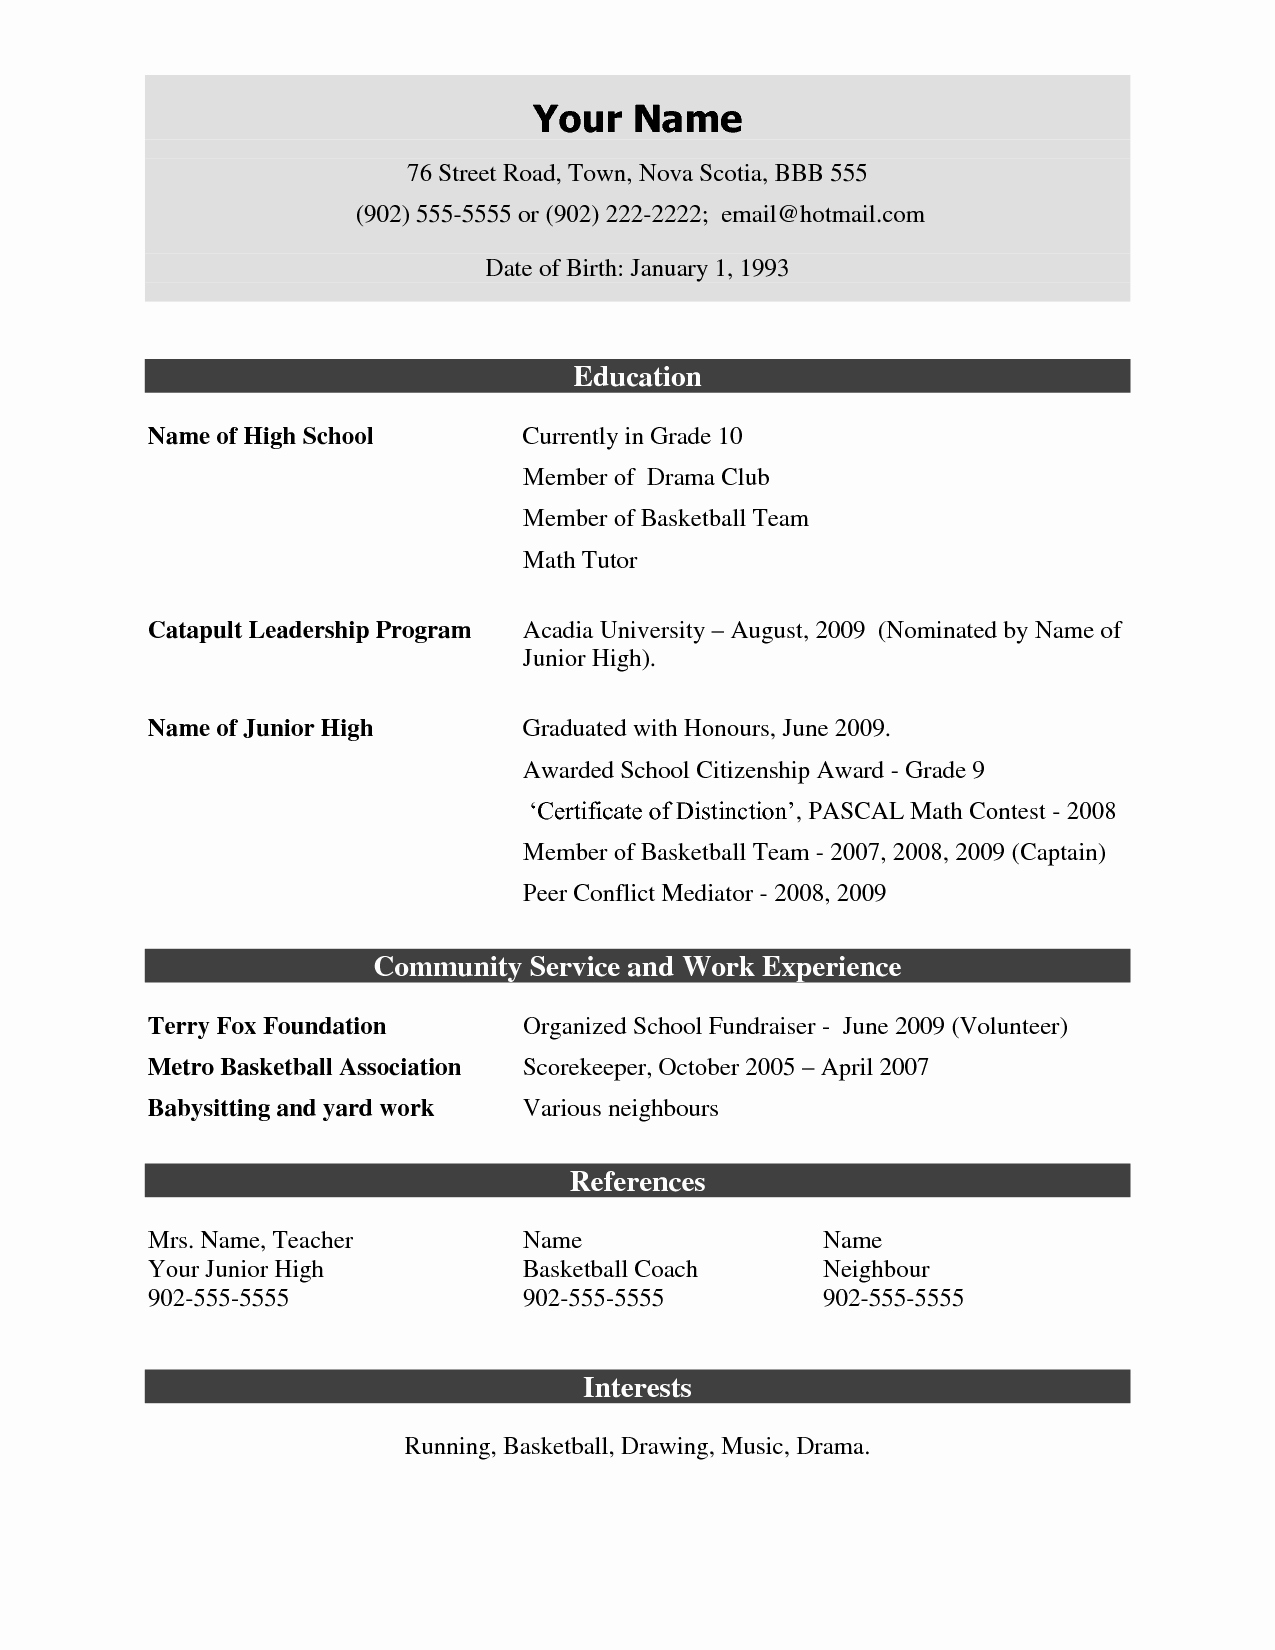 Professional Resume format Free Download New Demo Resume